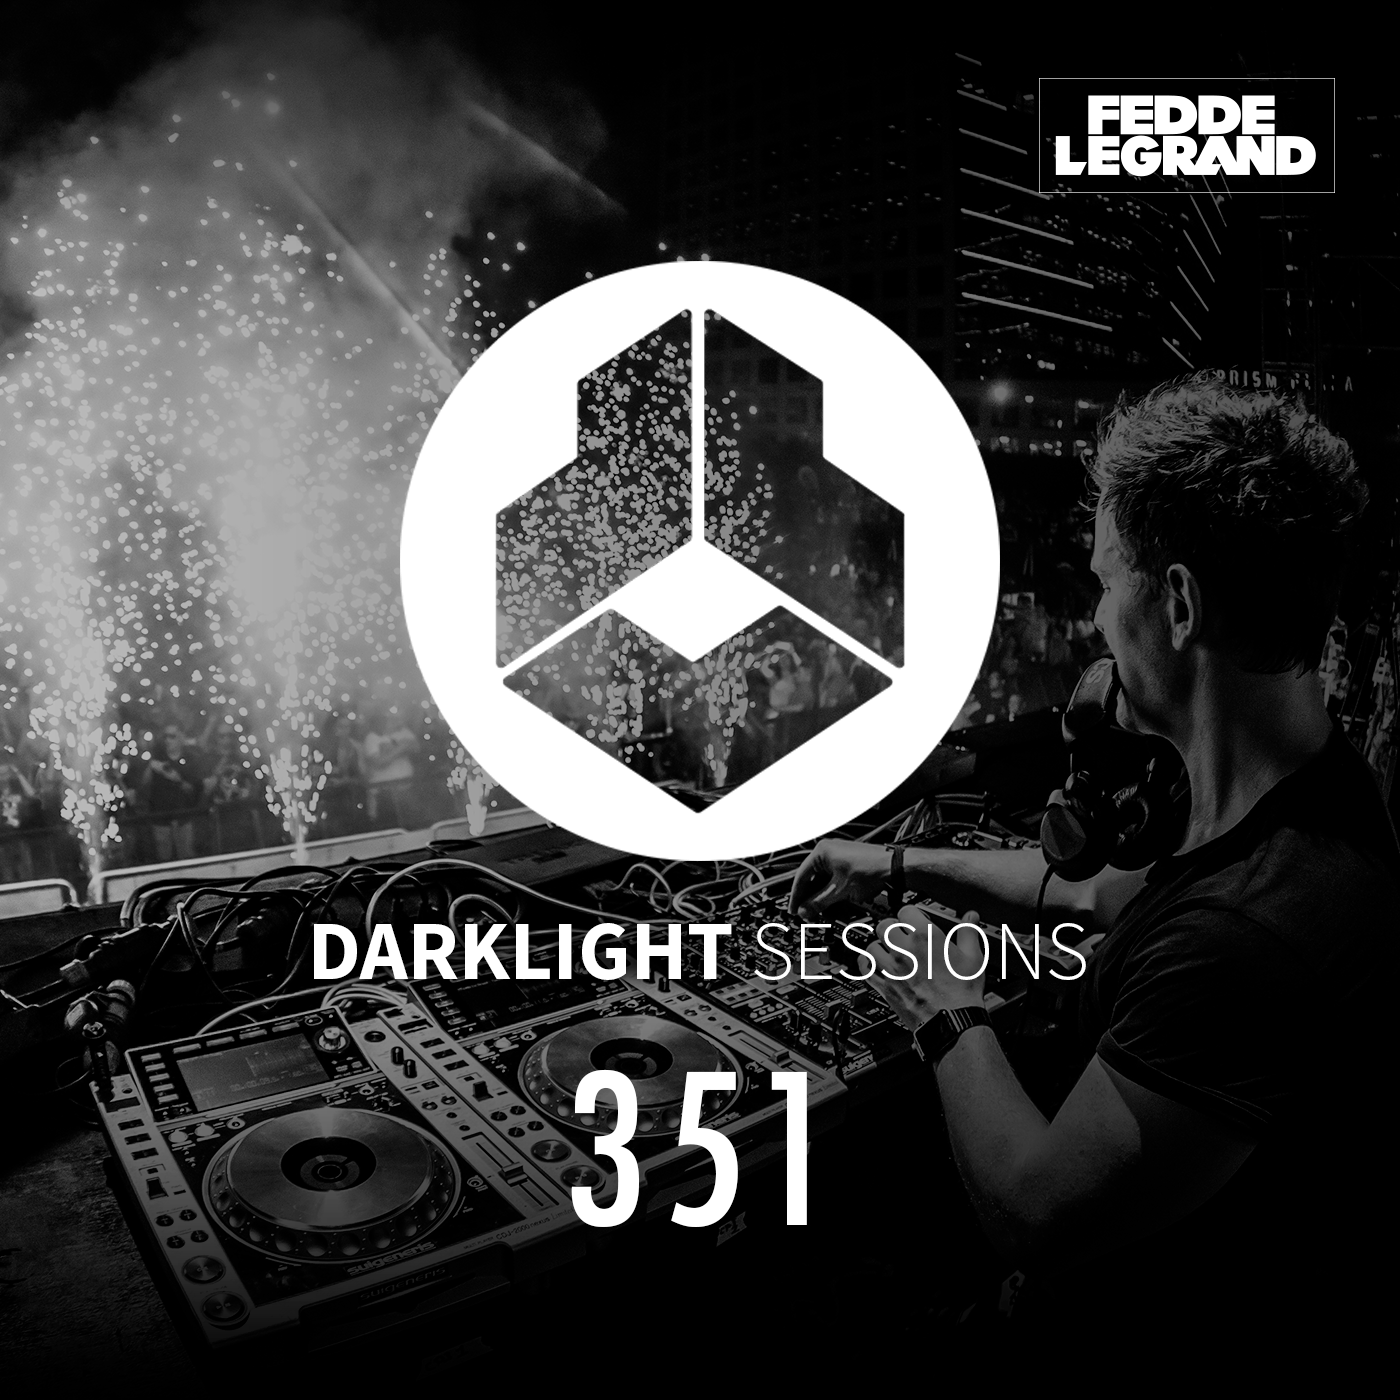 Darklight Sessions 351